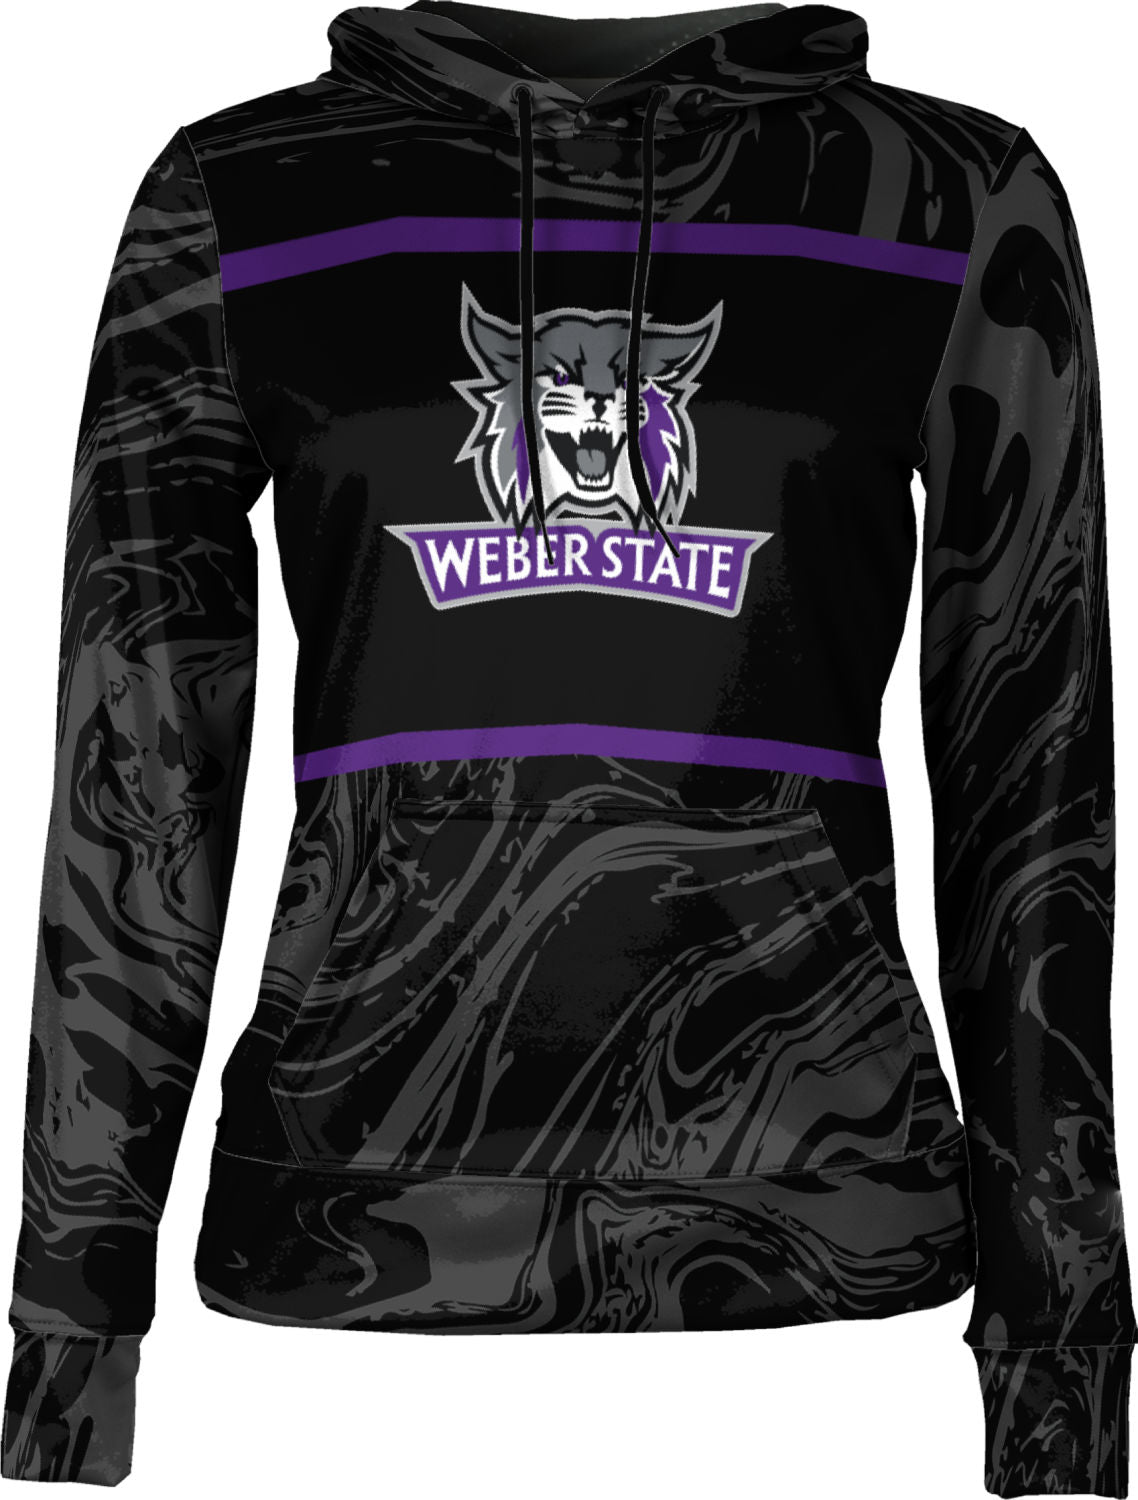 Weber State University: Women's Pullover Hoodie - Ripple